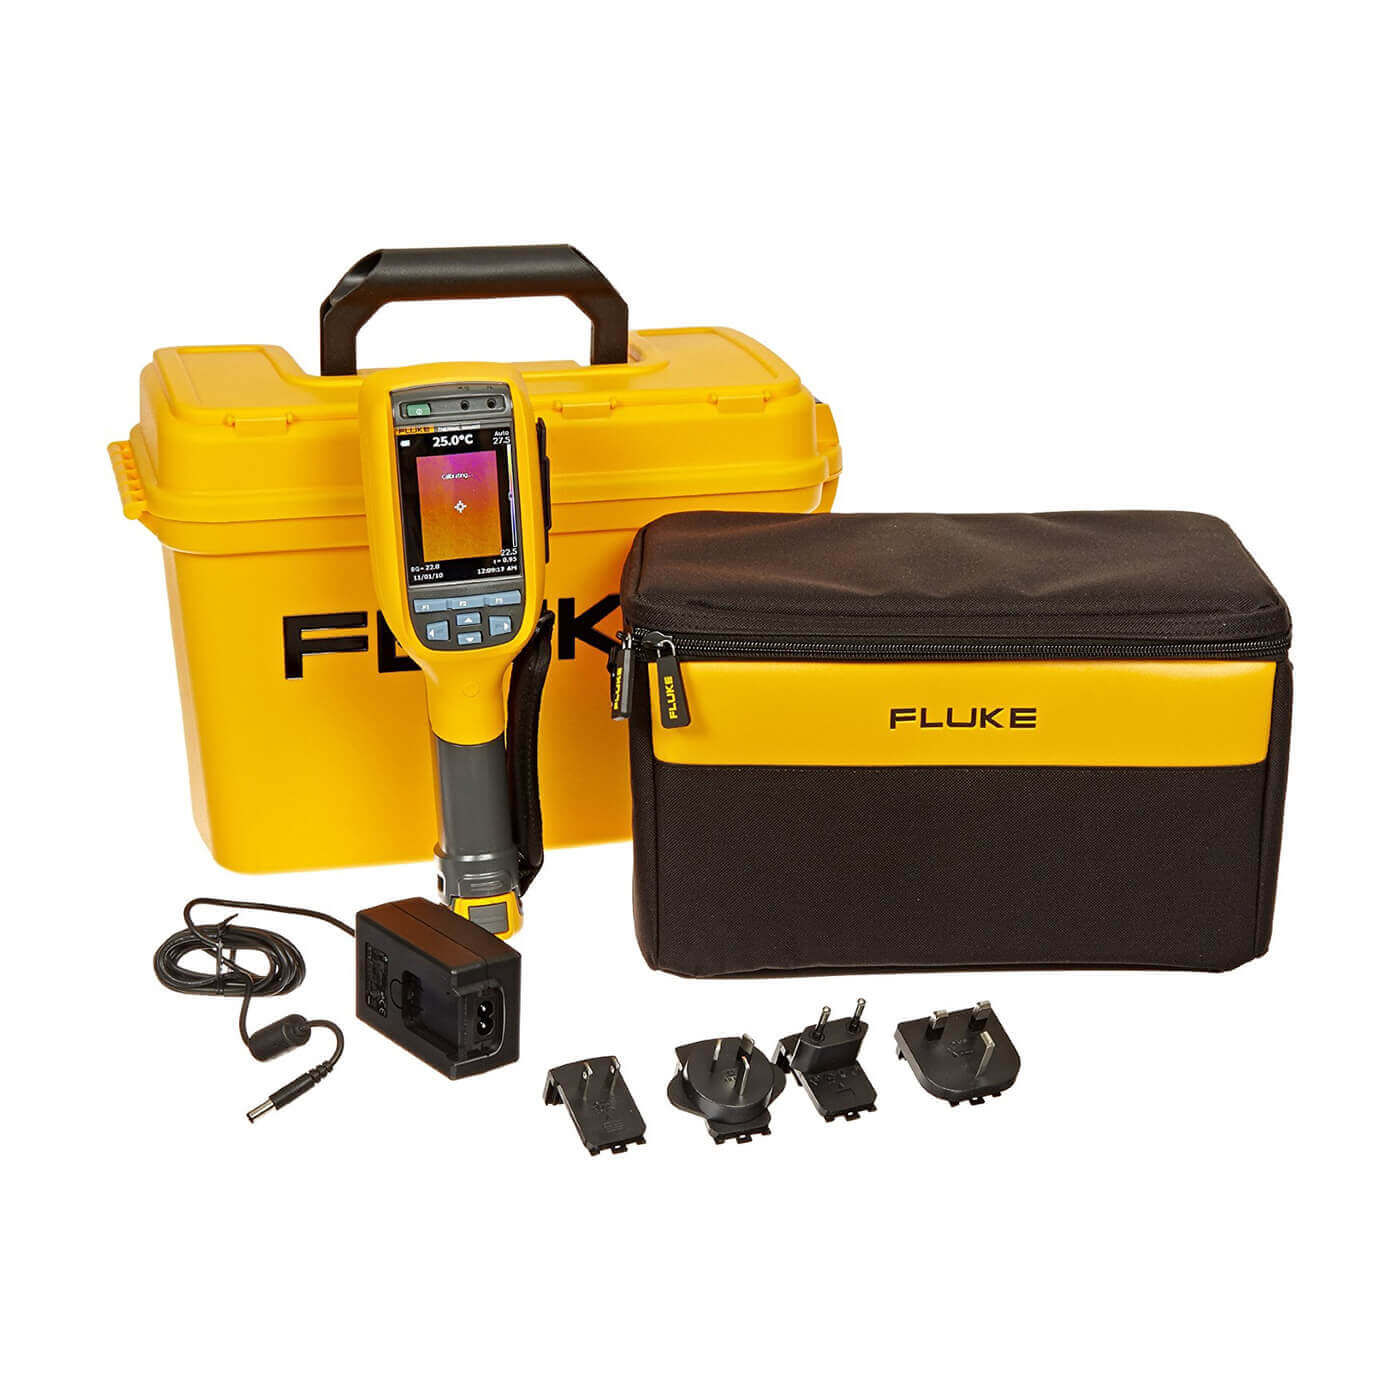 Fluke Ti105 Thermal Imager review